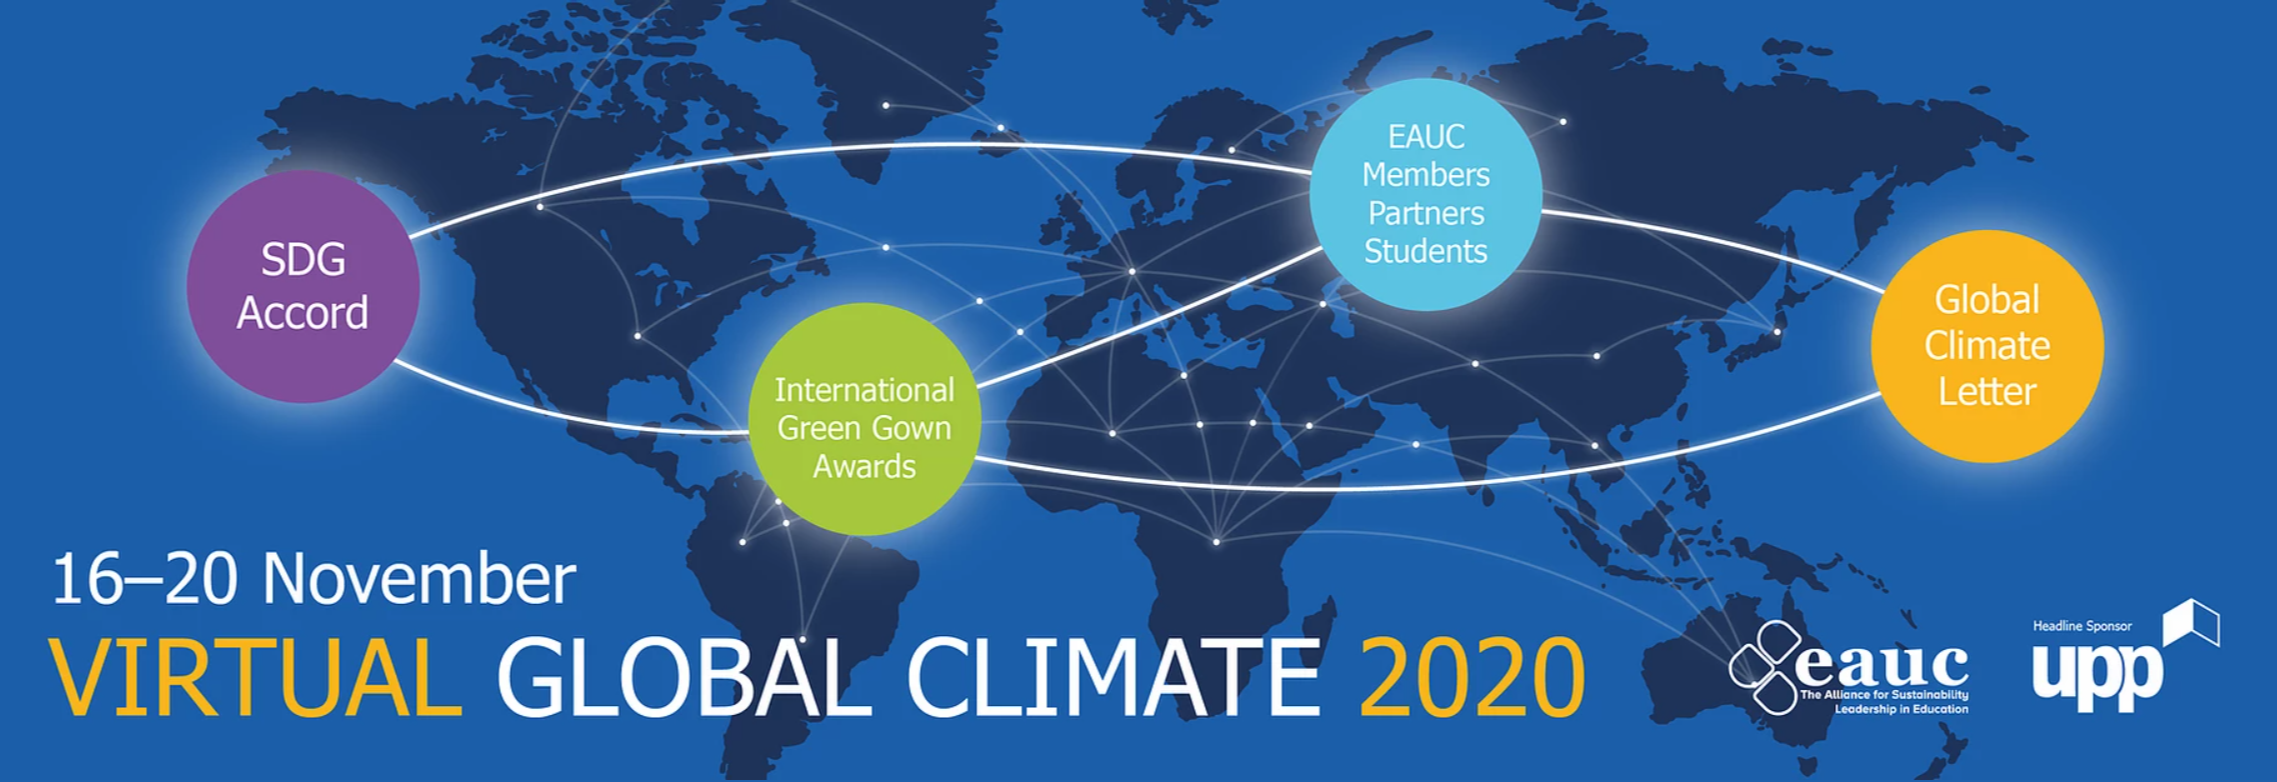 No Talk, Action Only: Lessons learnt from the 2020 EAUC Conference on how to fight climate change.